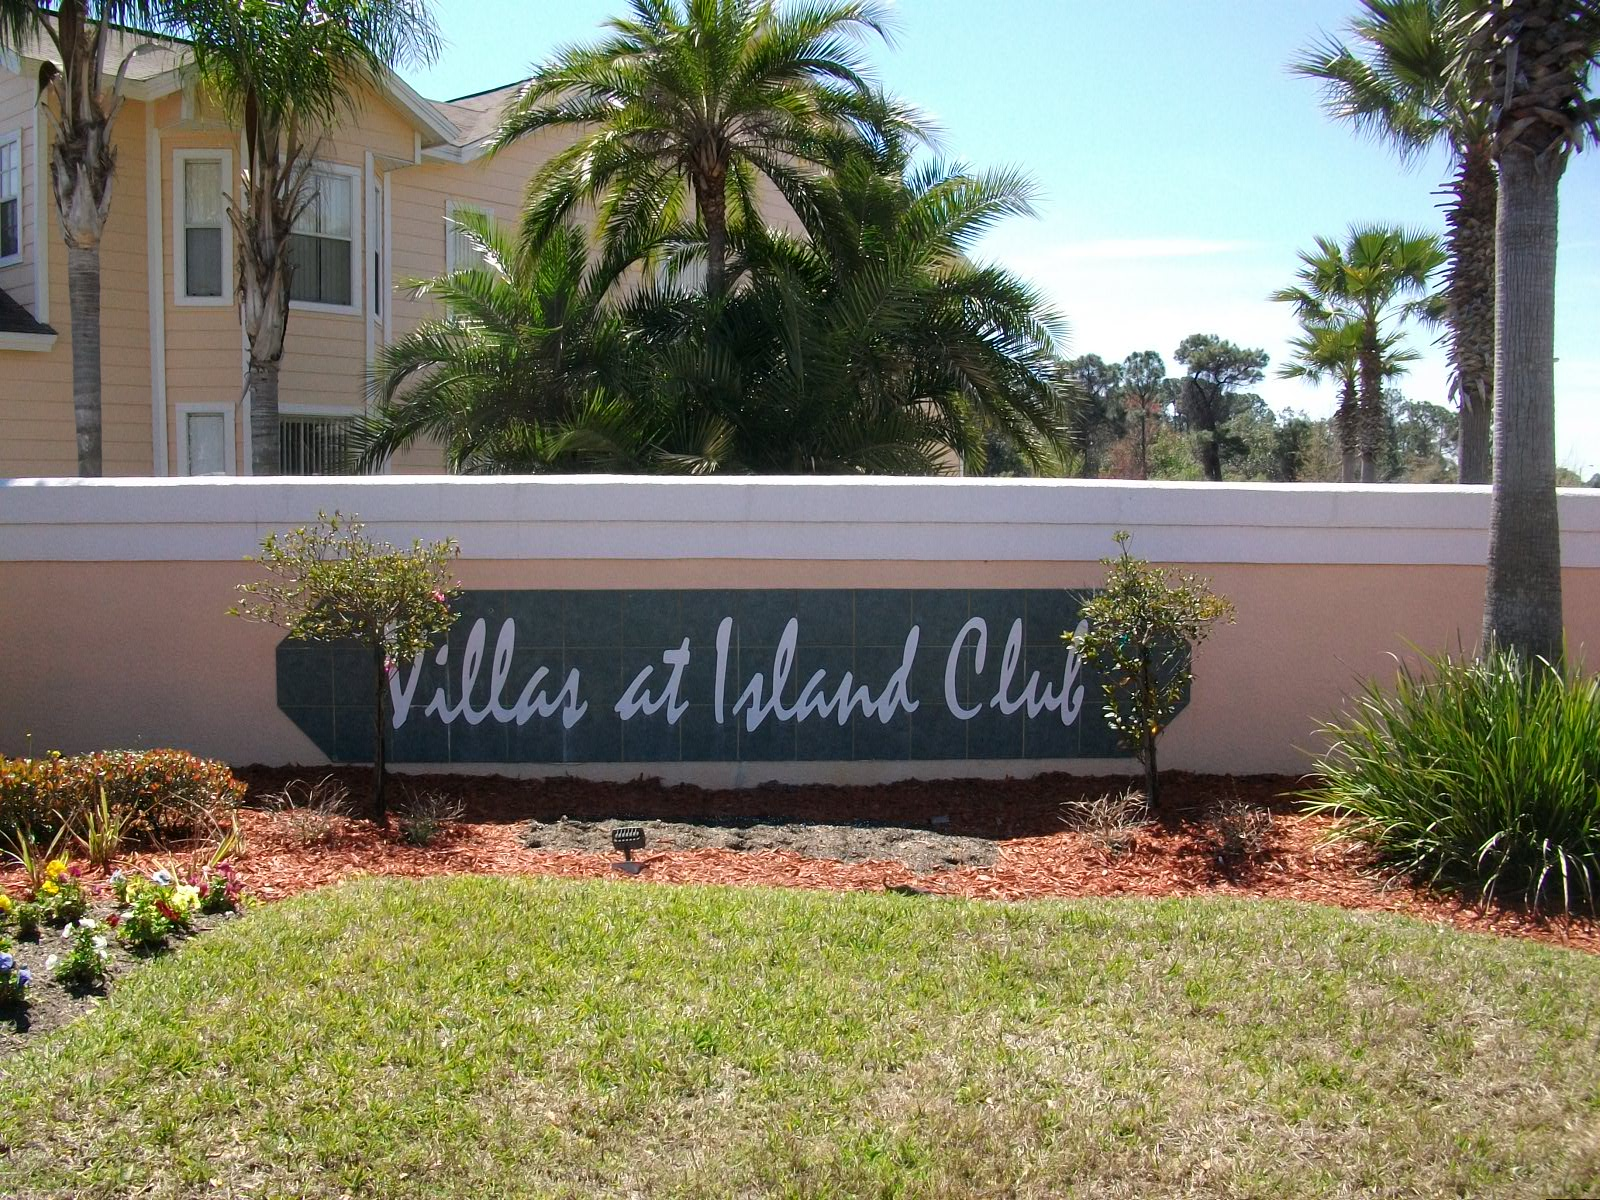 Villas at Island Club Entrance